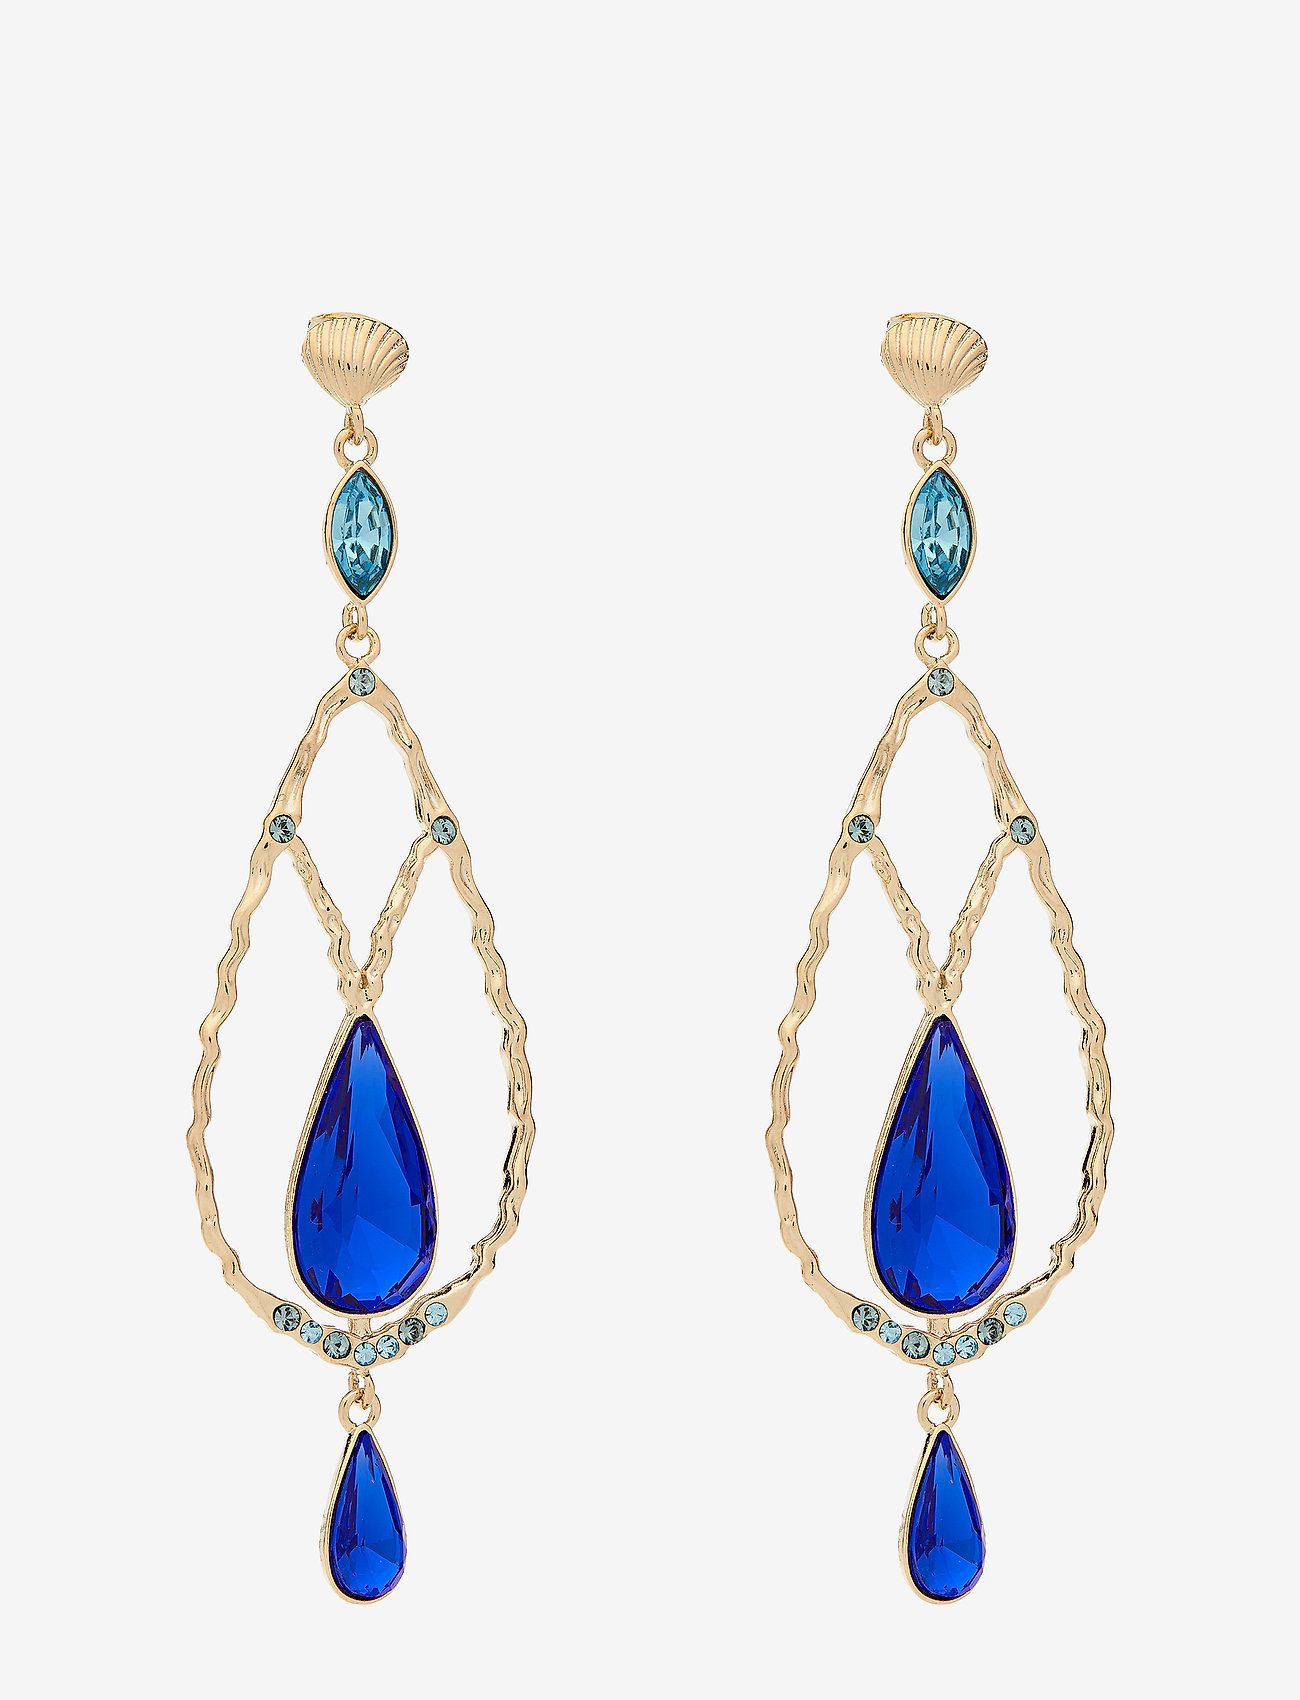 LILY AND ROSE - Garbo earrings - Majestic blue - statement - majestic blue